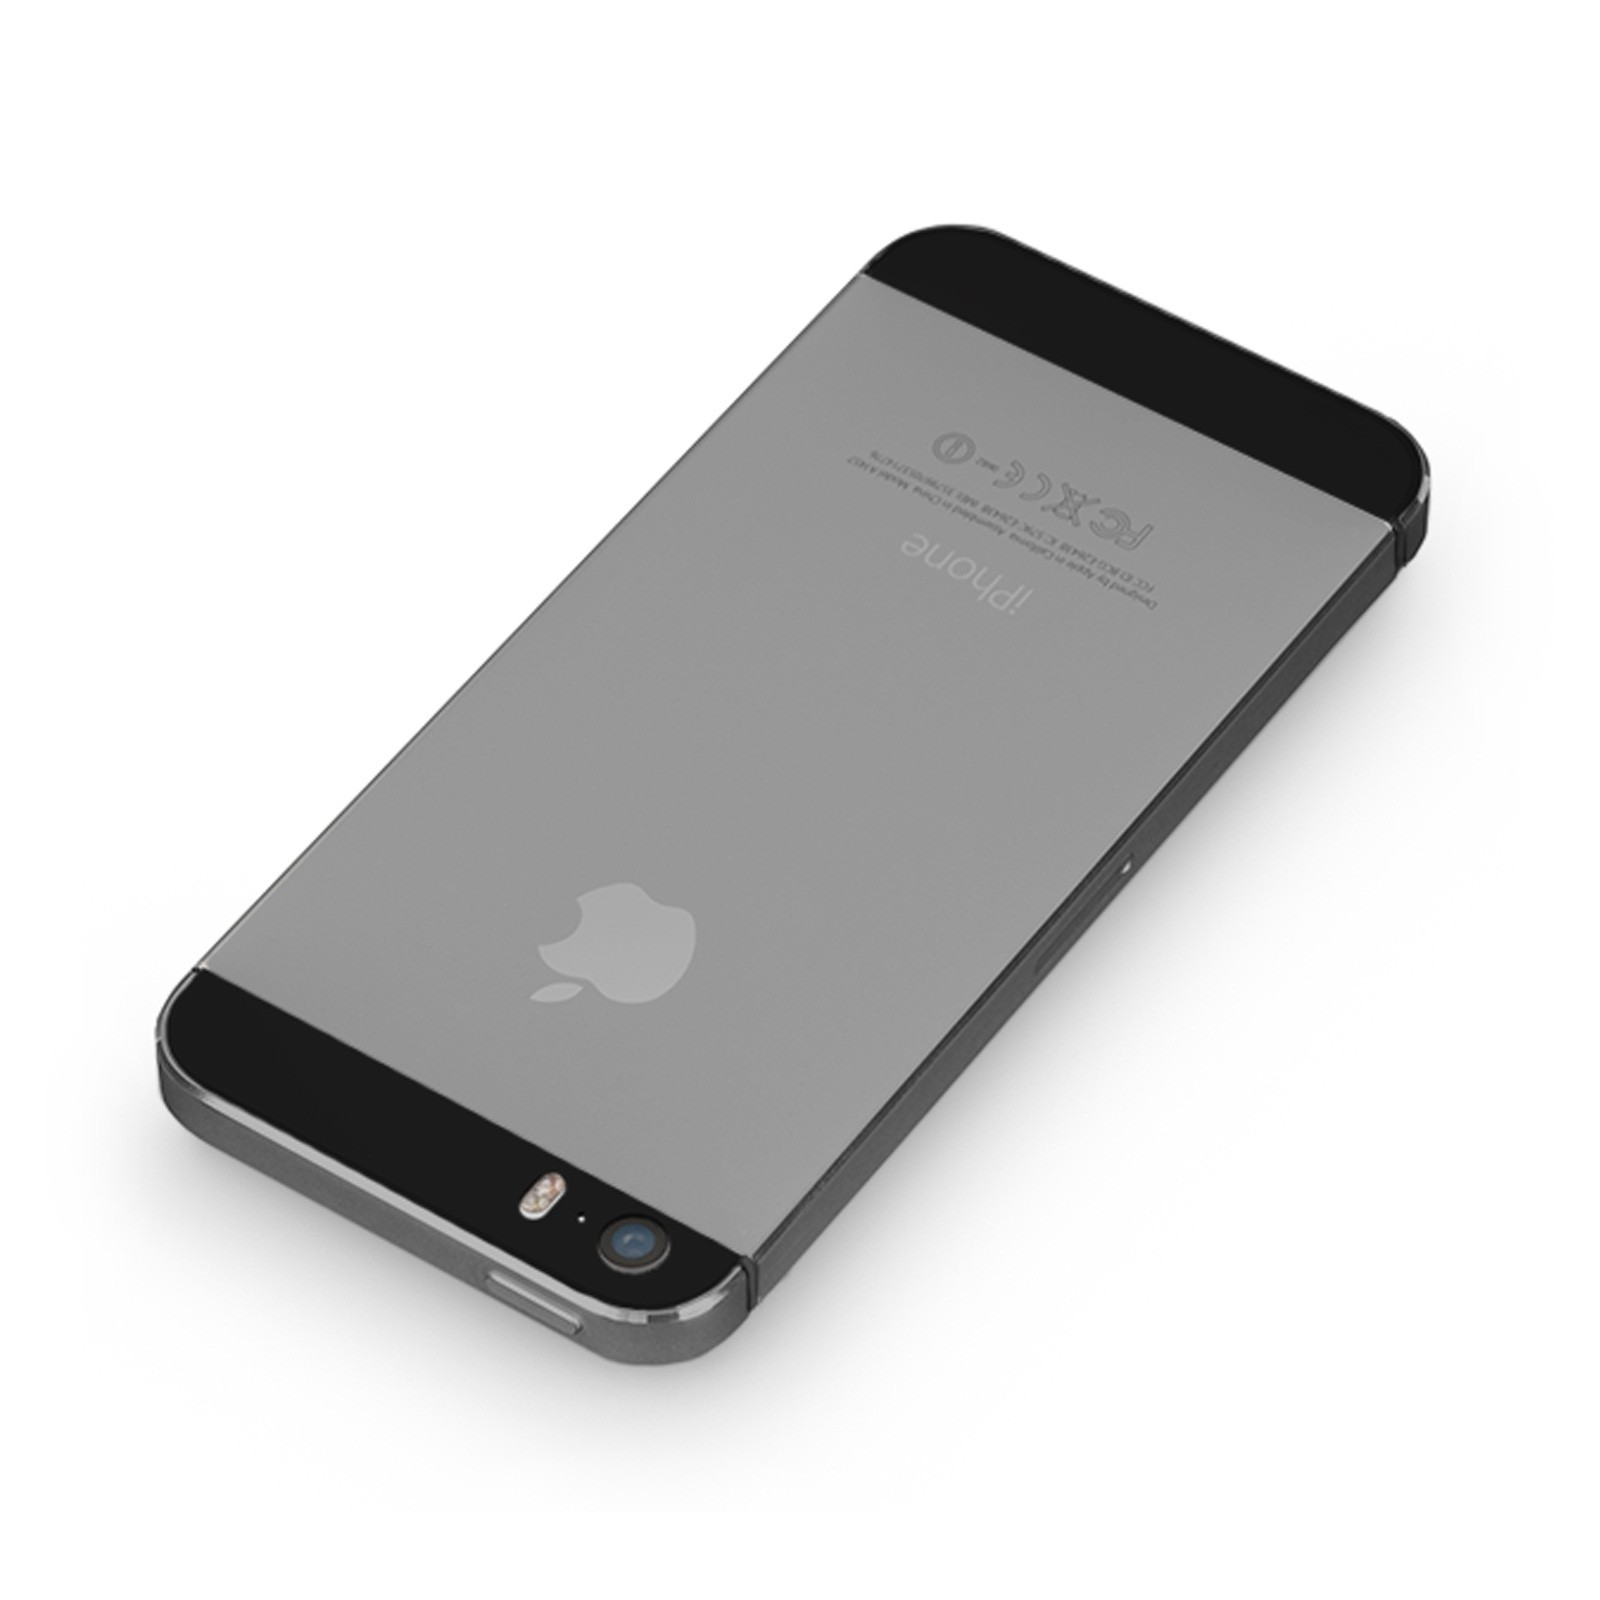 Apple IPhone 5s 16GB Spacegrey